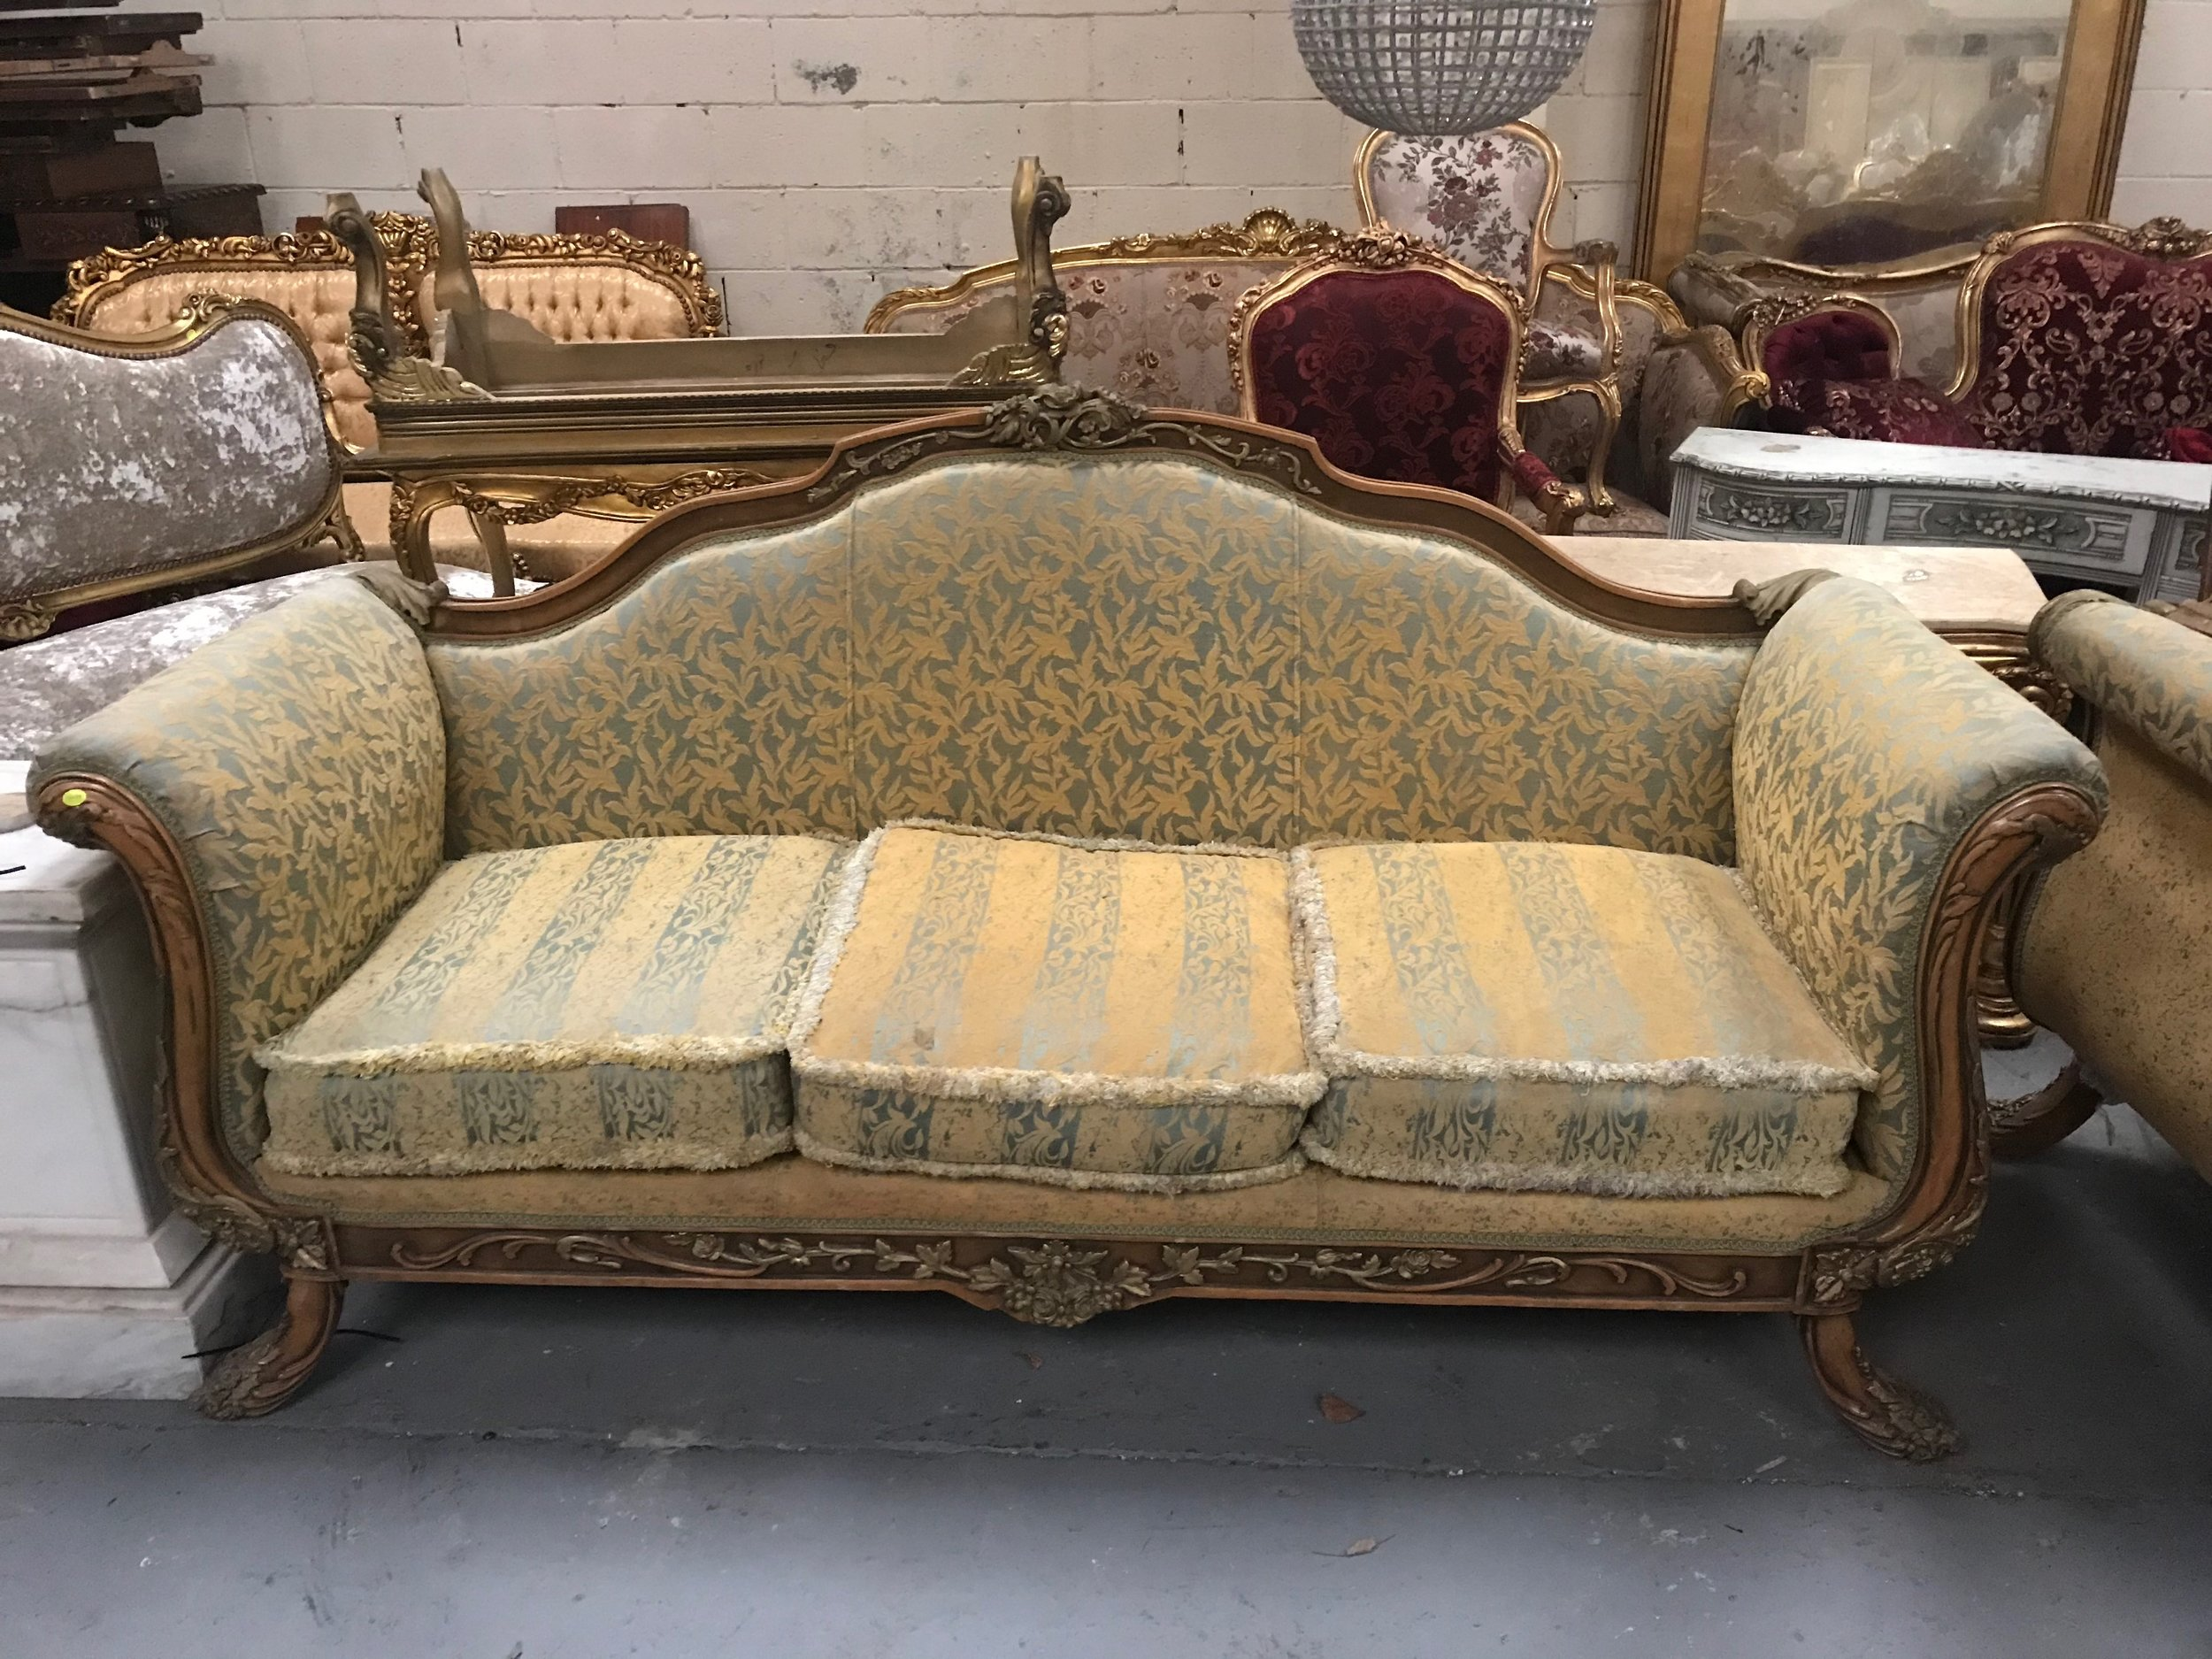 carved wood sofa Renaissance Antique Furniture and Lighting Warehouse Dublin Ireland